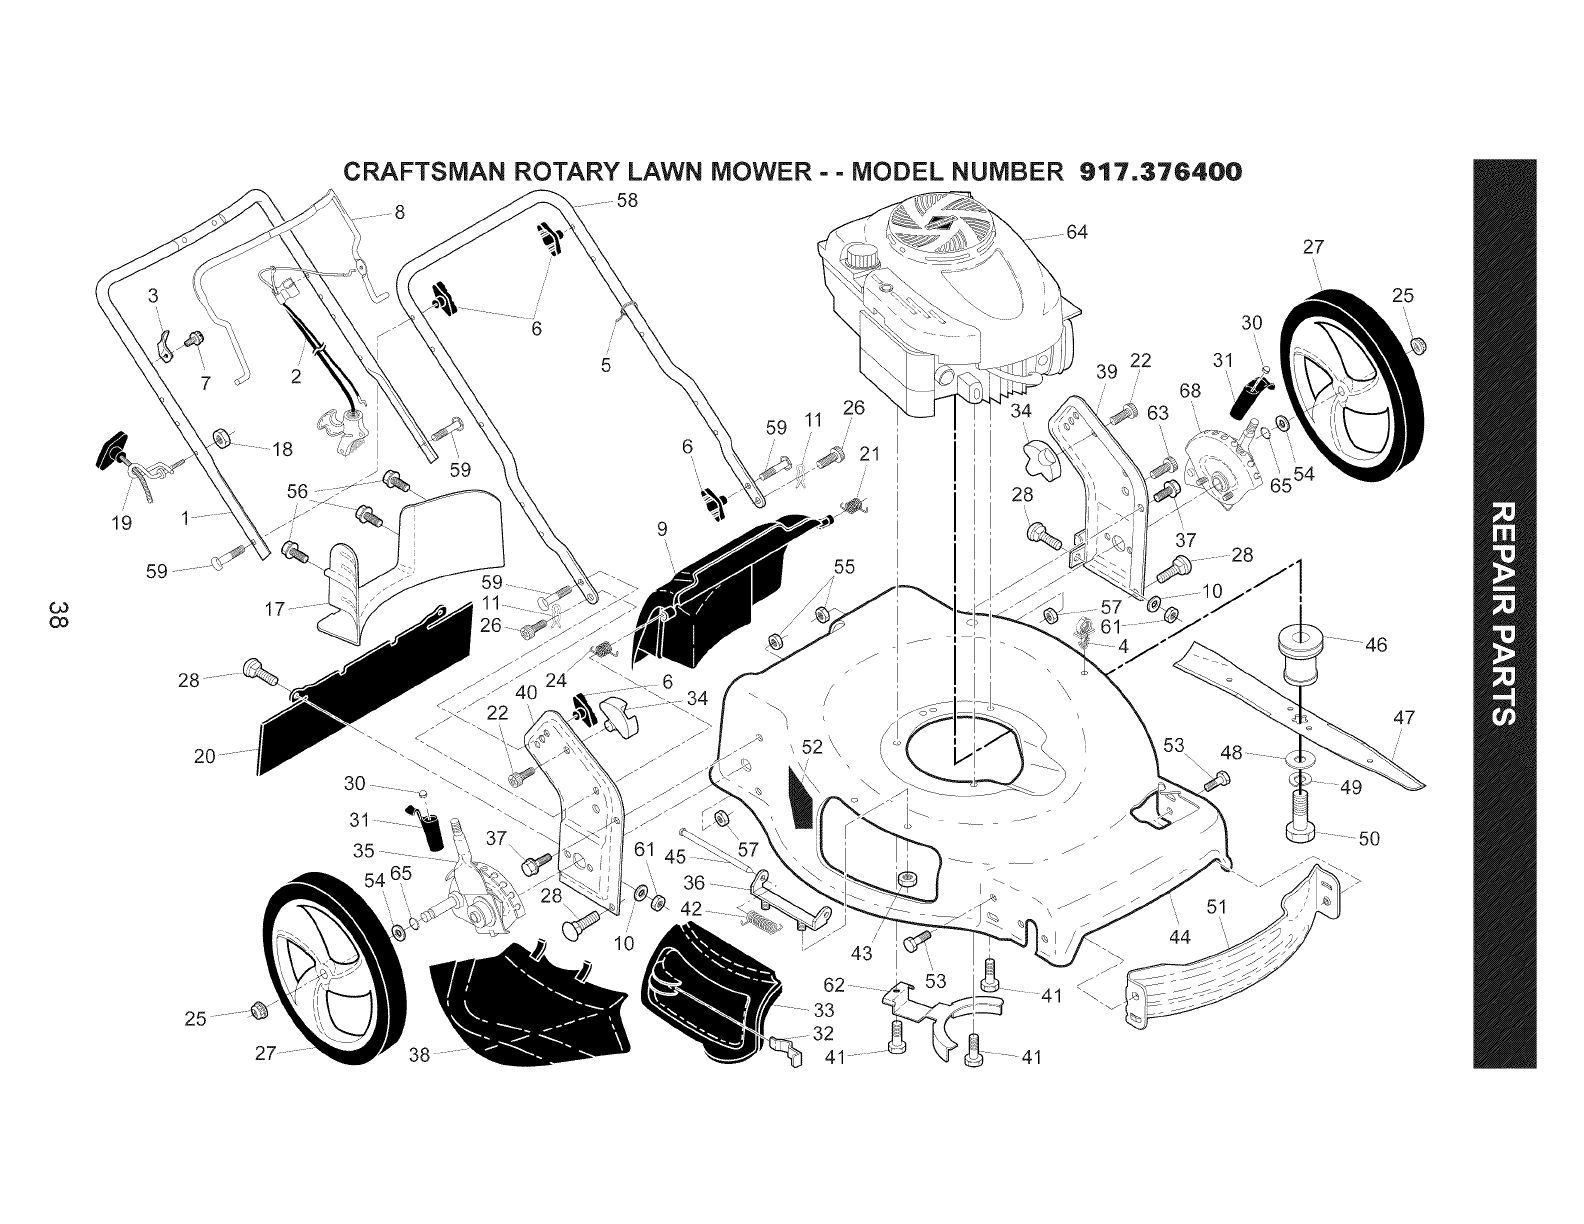 Page 38 of Craftsman Lawn Mower 917.376400 User Guide